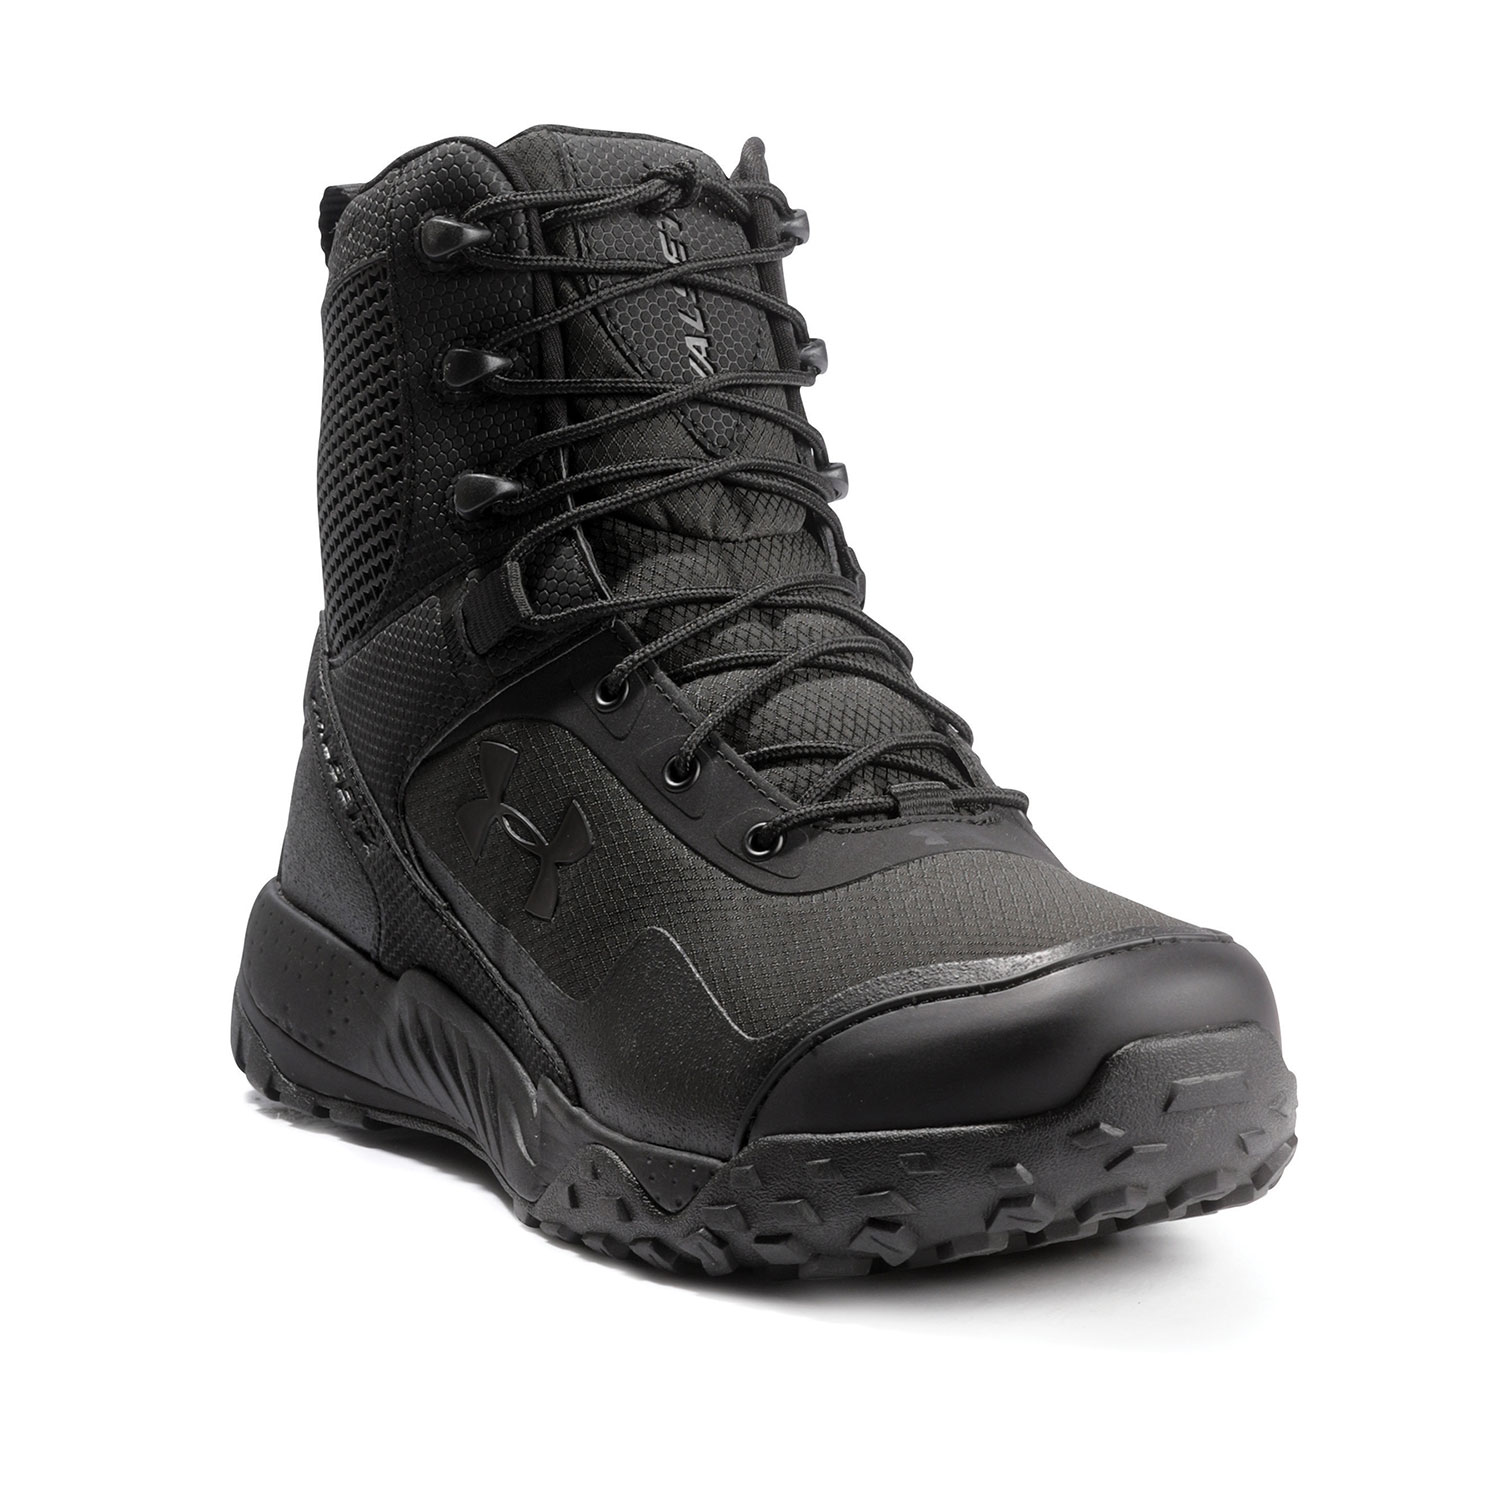 Under Armour Valsetz RTS 1.5 Side-Zip Tactical Boot